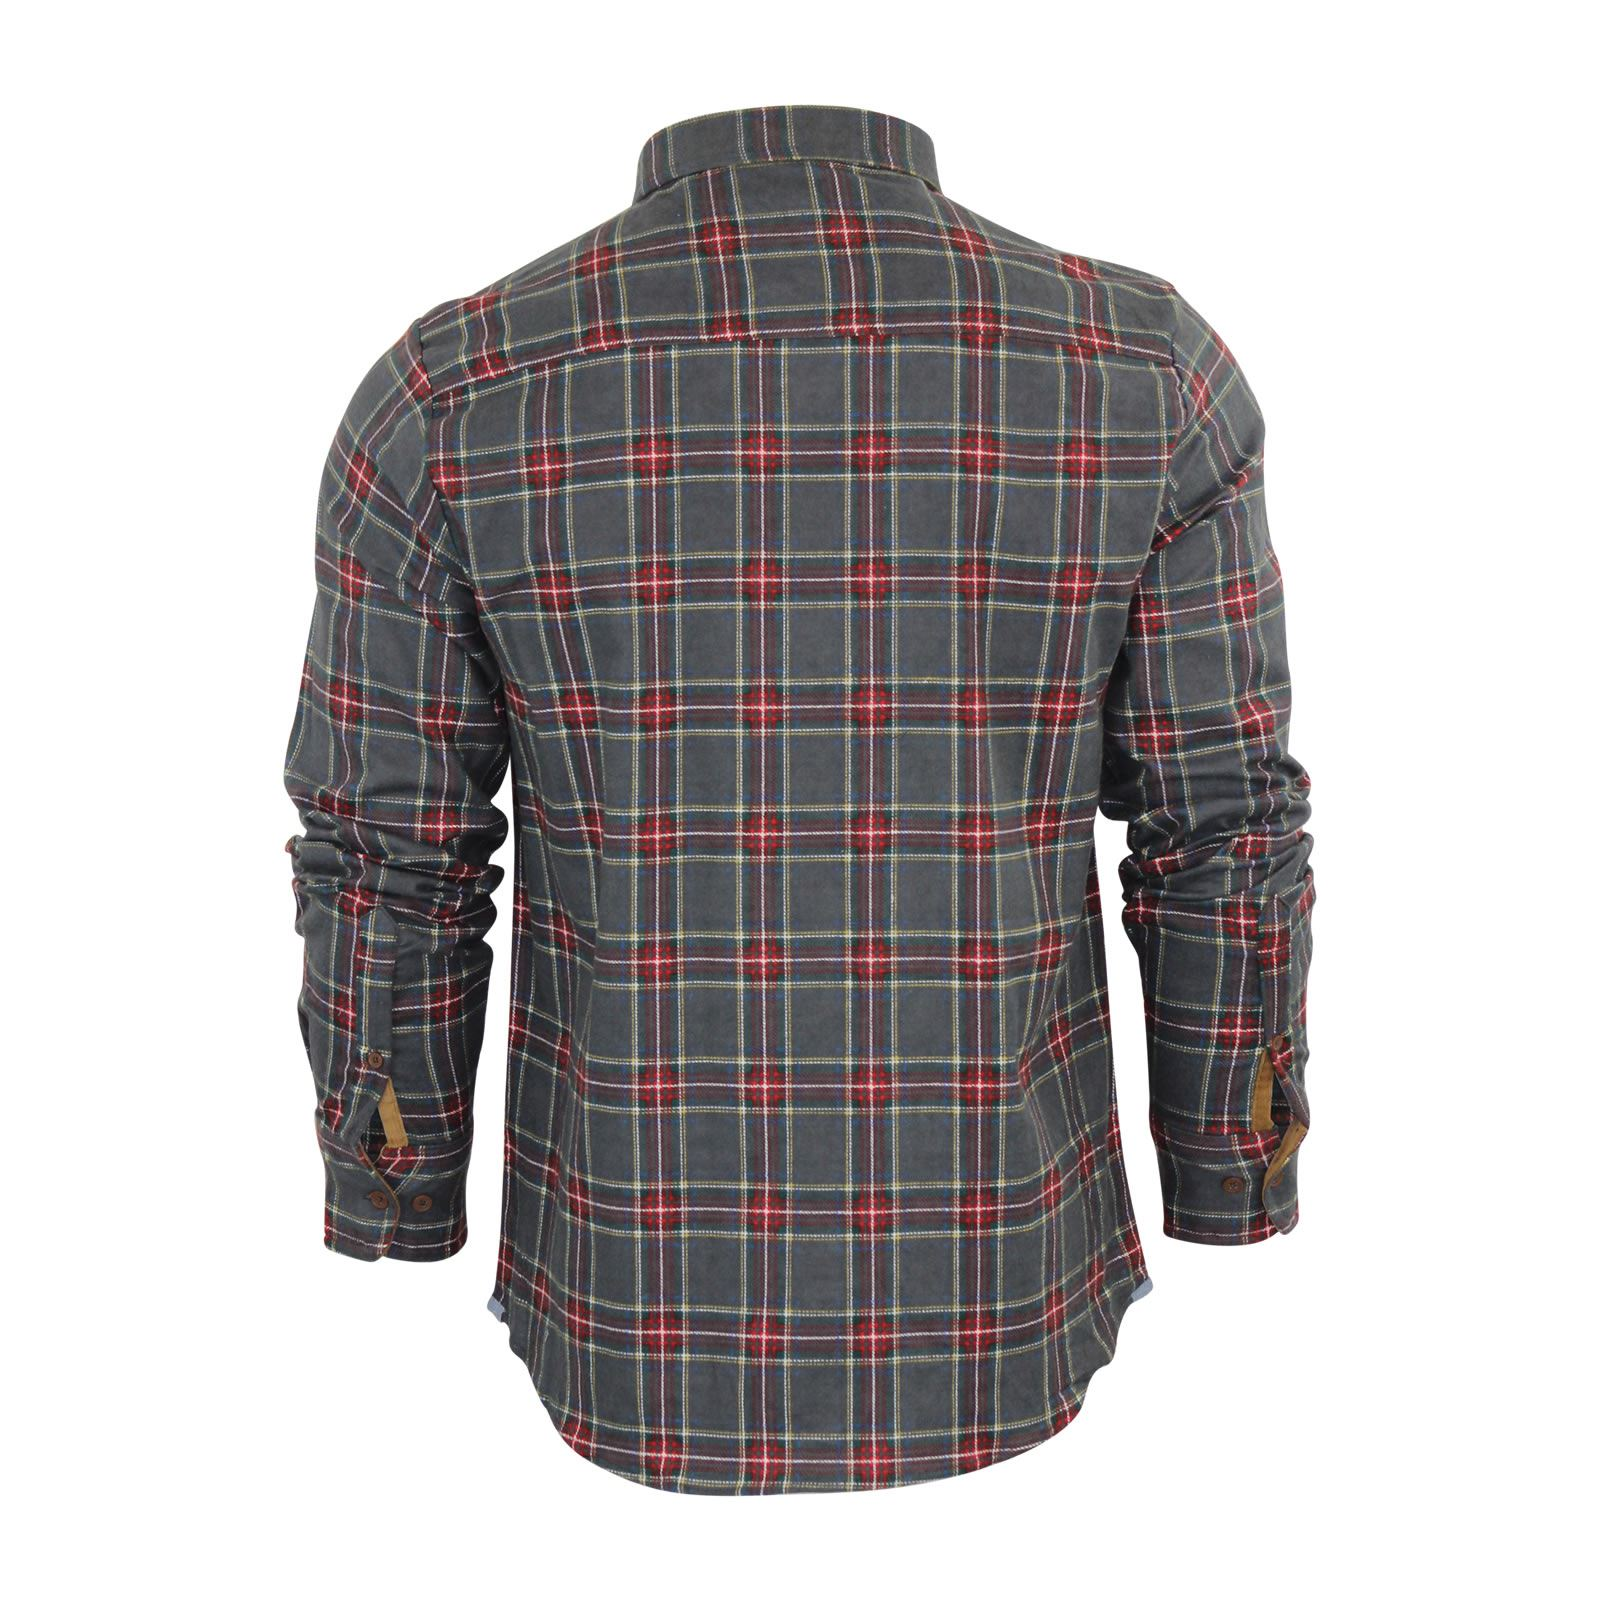 Mens-Check-Shirt-Brave-Soul-Flannel-Brushed-Cotton-Long-Sleeve-Casual-Top thumbnail 12